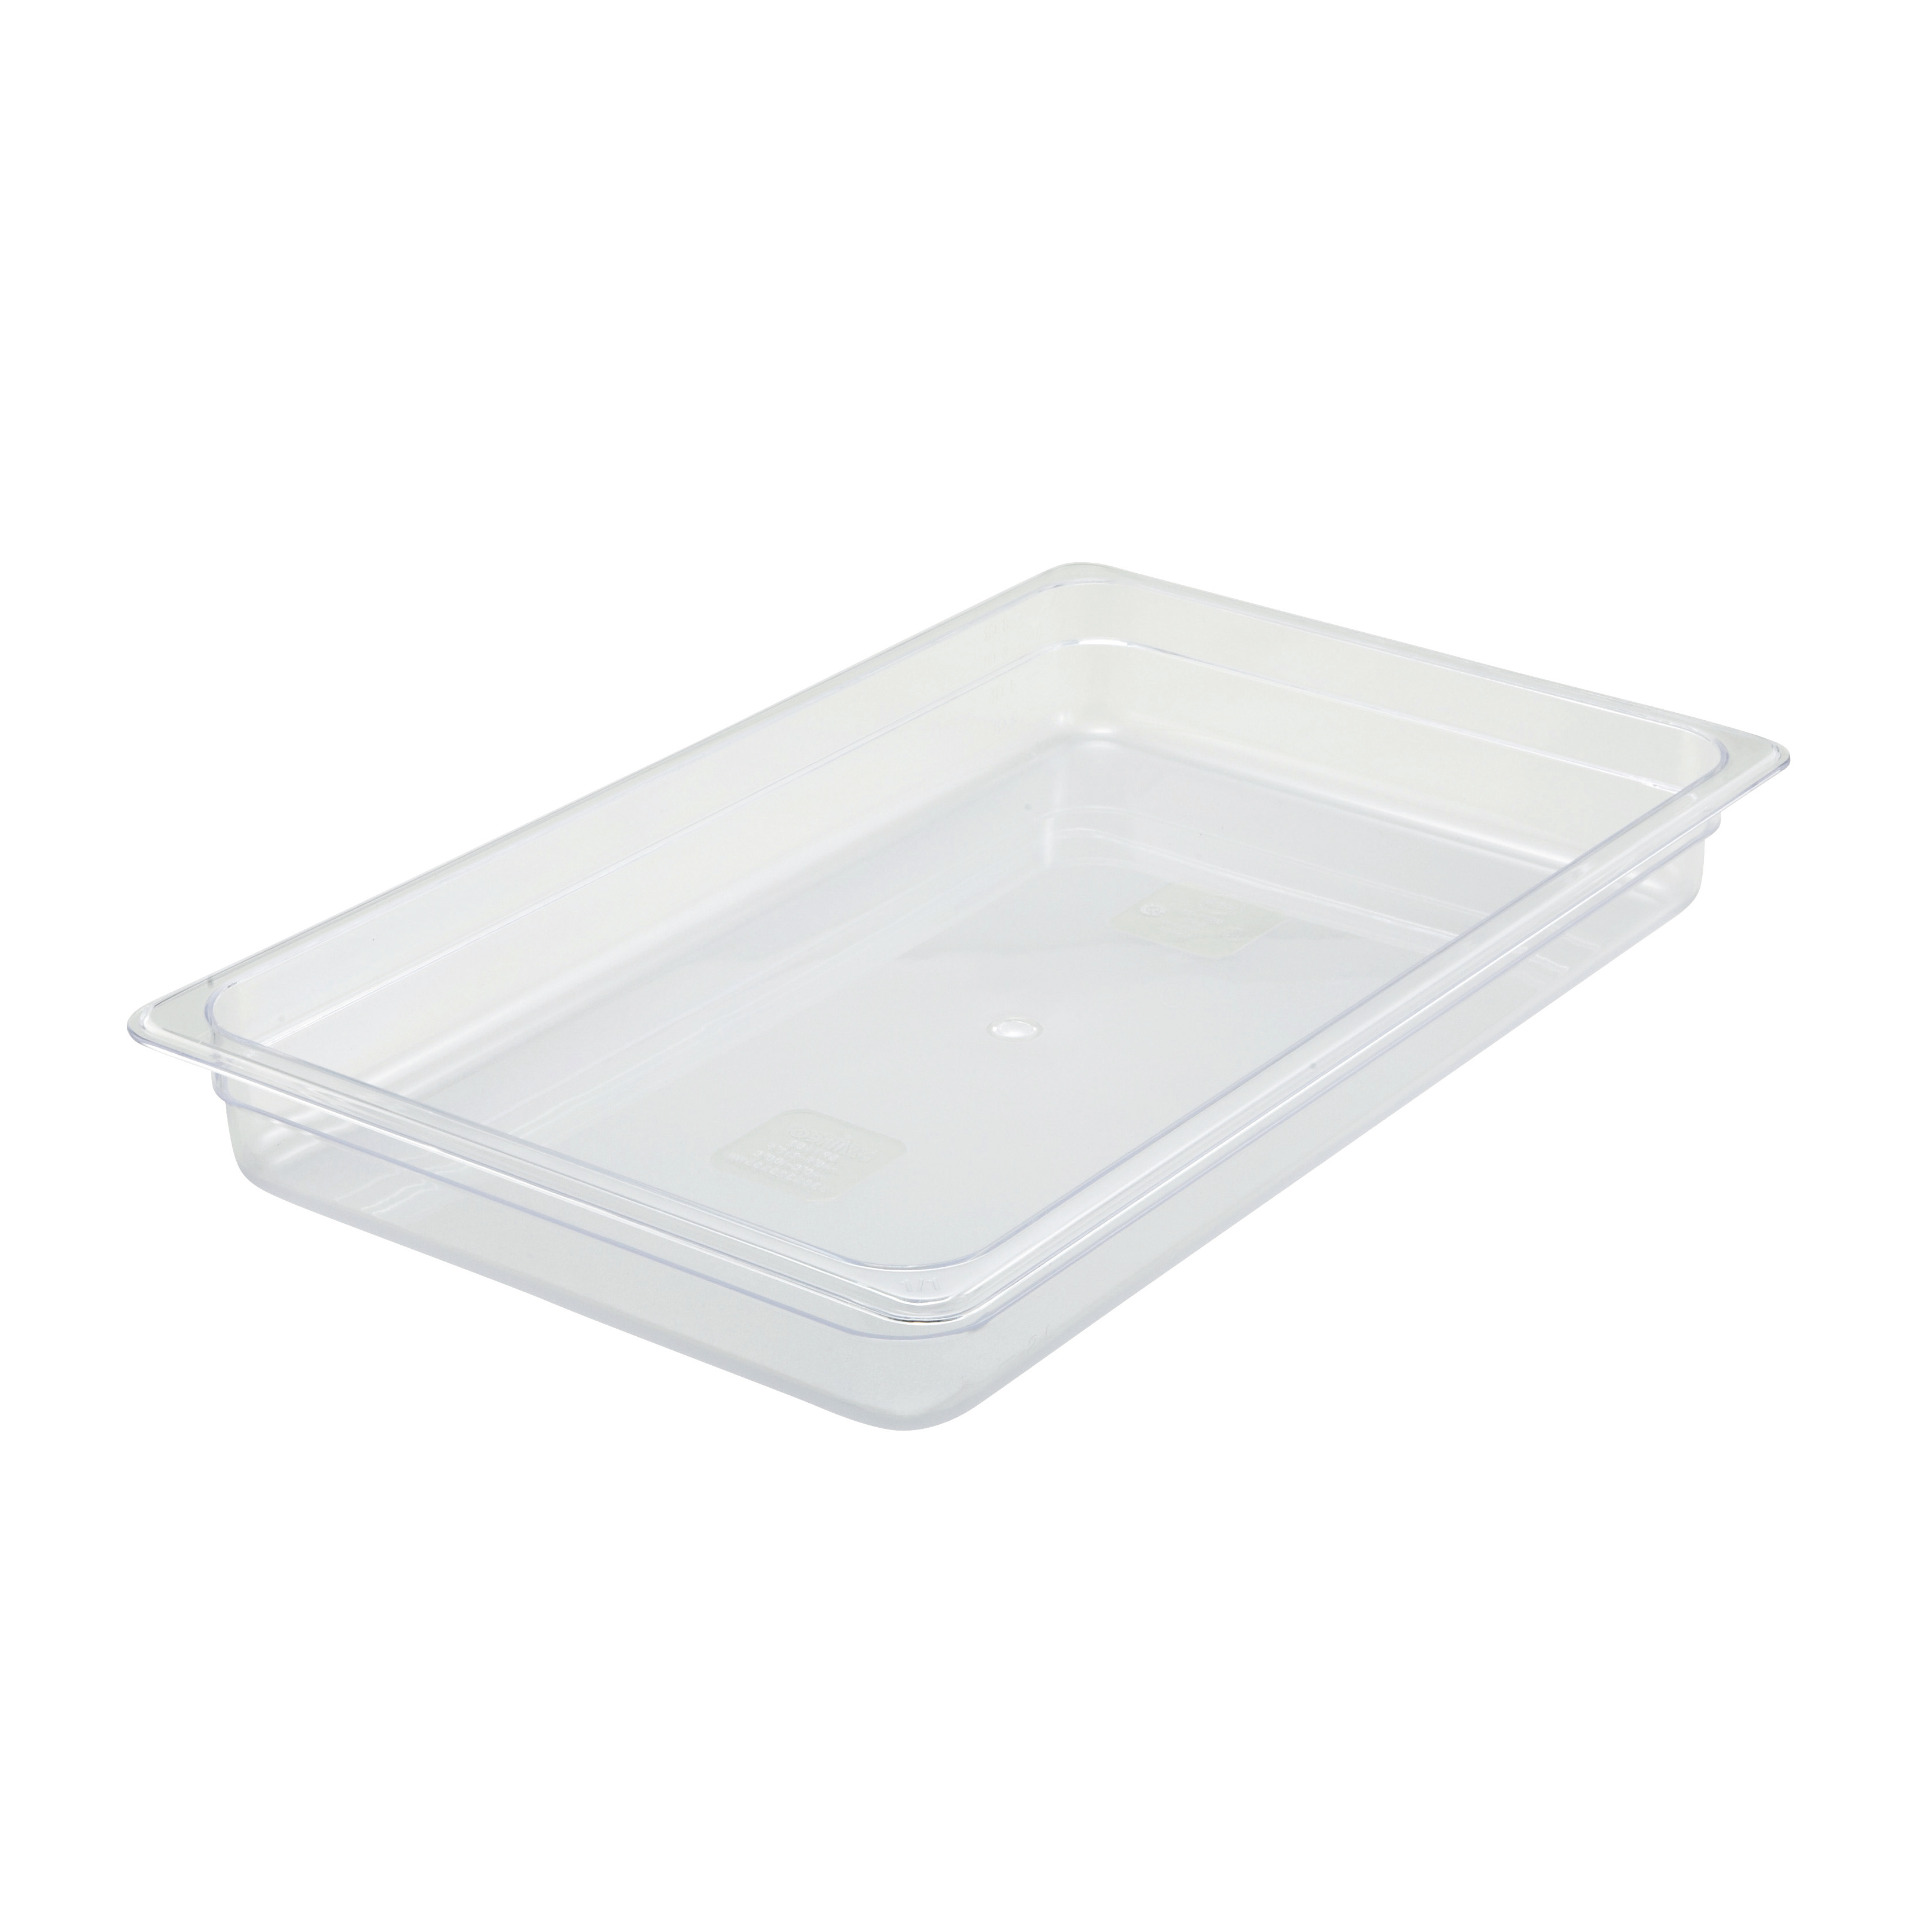 Winco SP7102 food pan, plastic